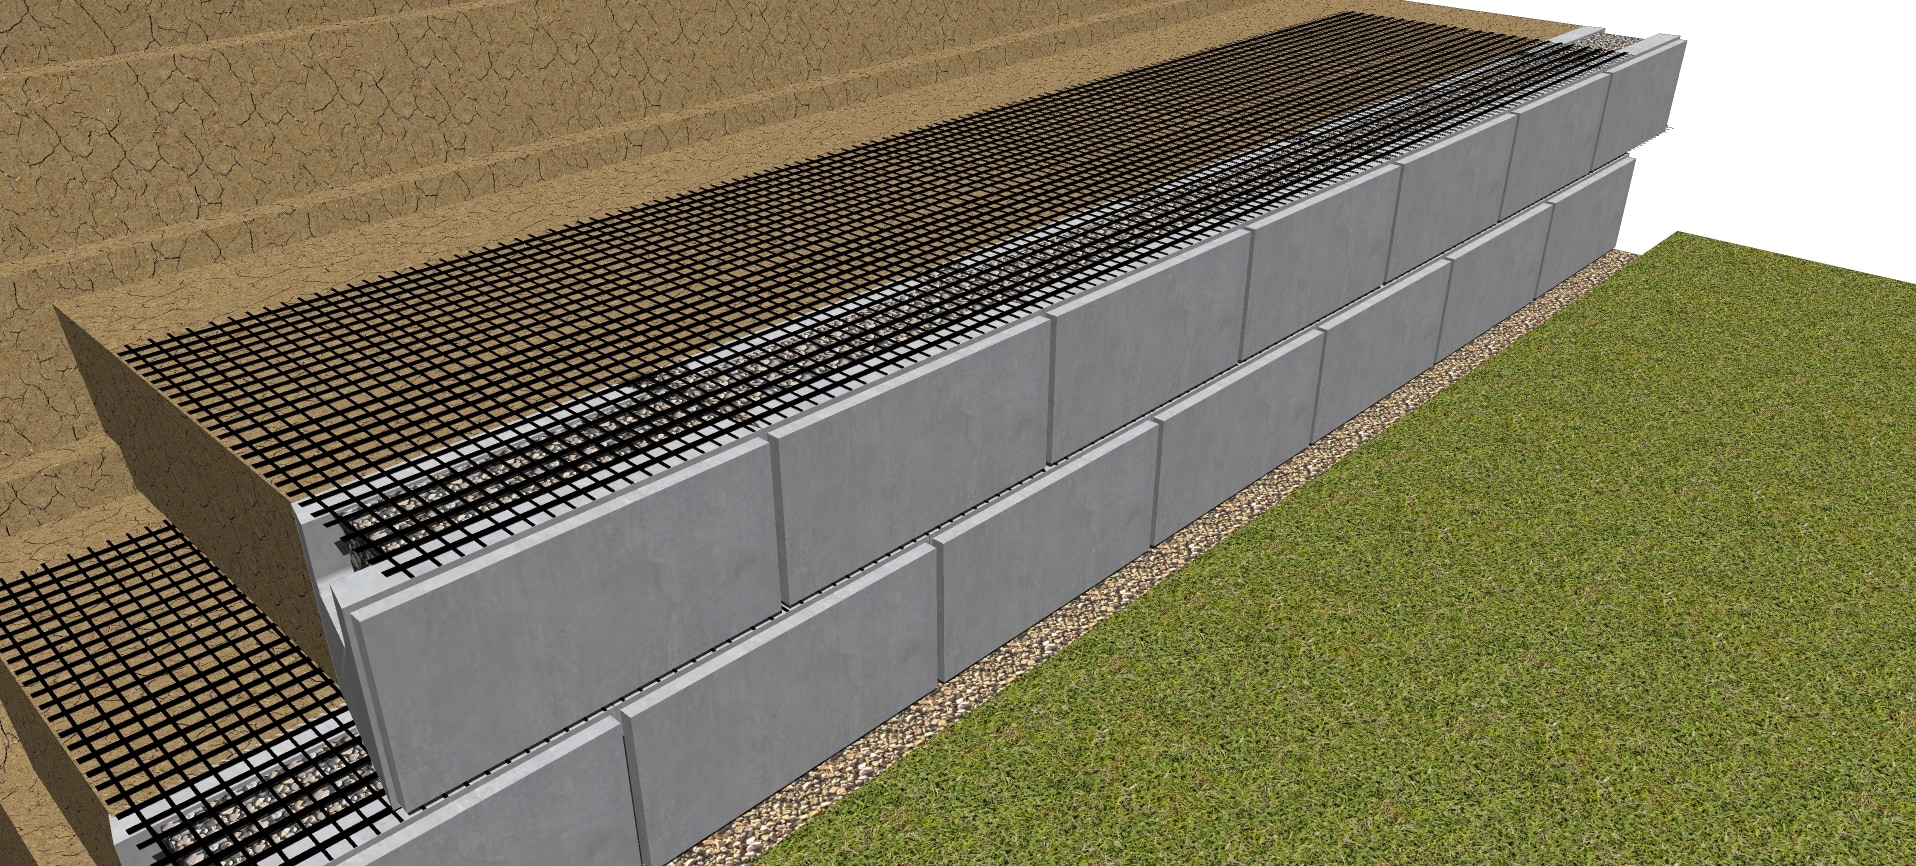 second row geogrid for retaining wall